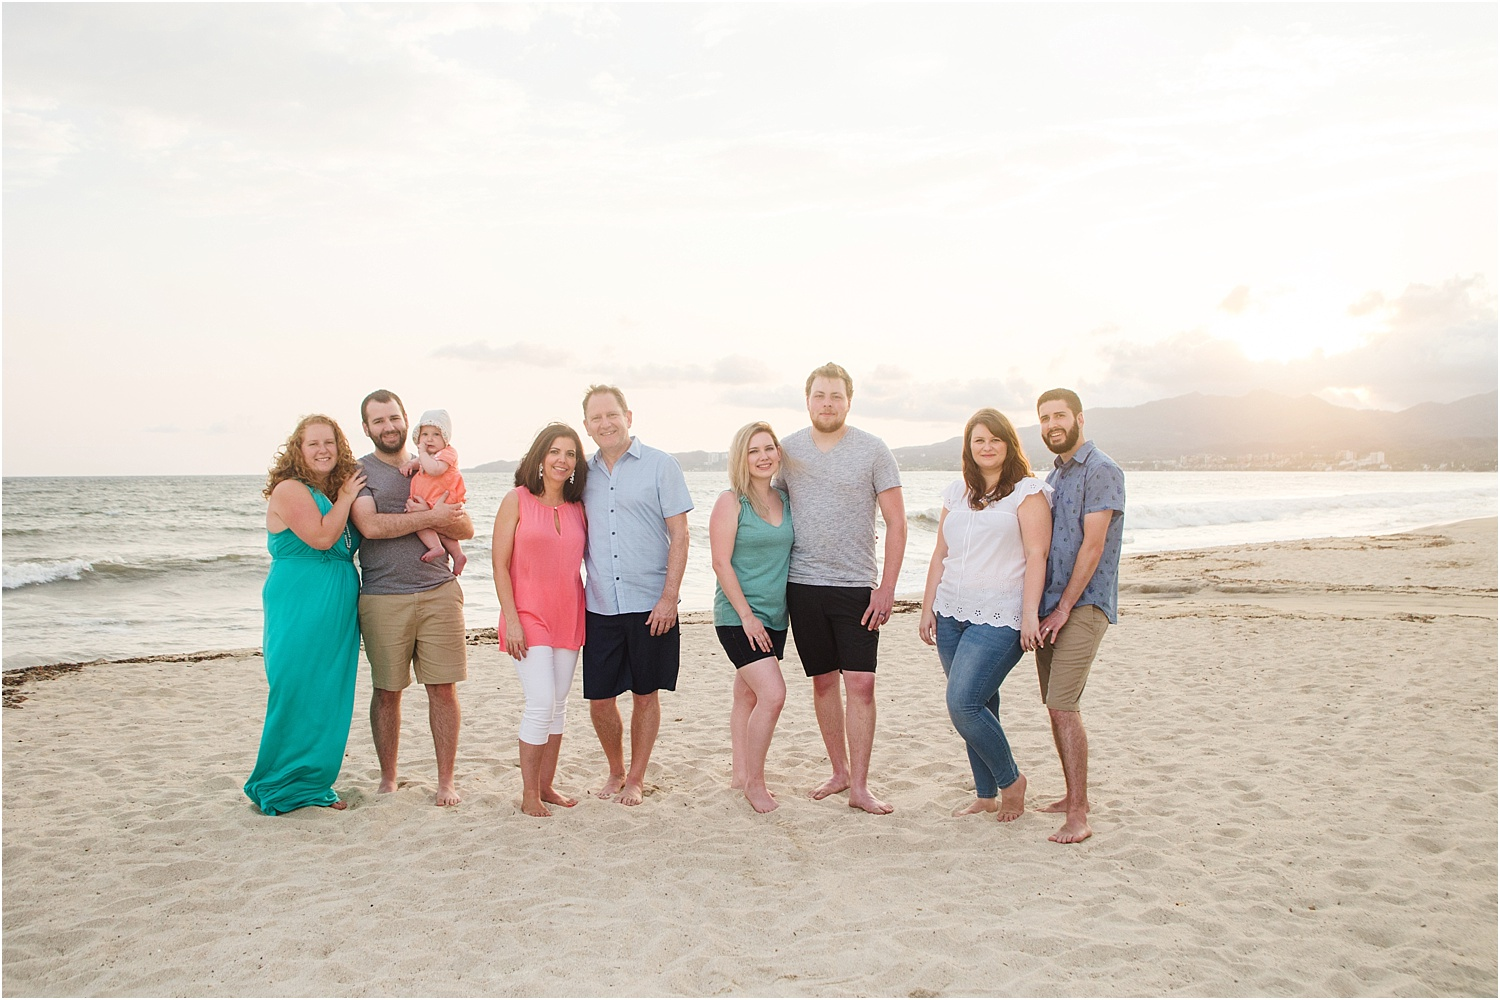 Using Flash for Beach Portraits - family portrait on the beach